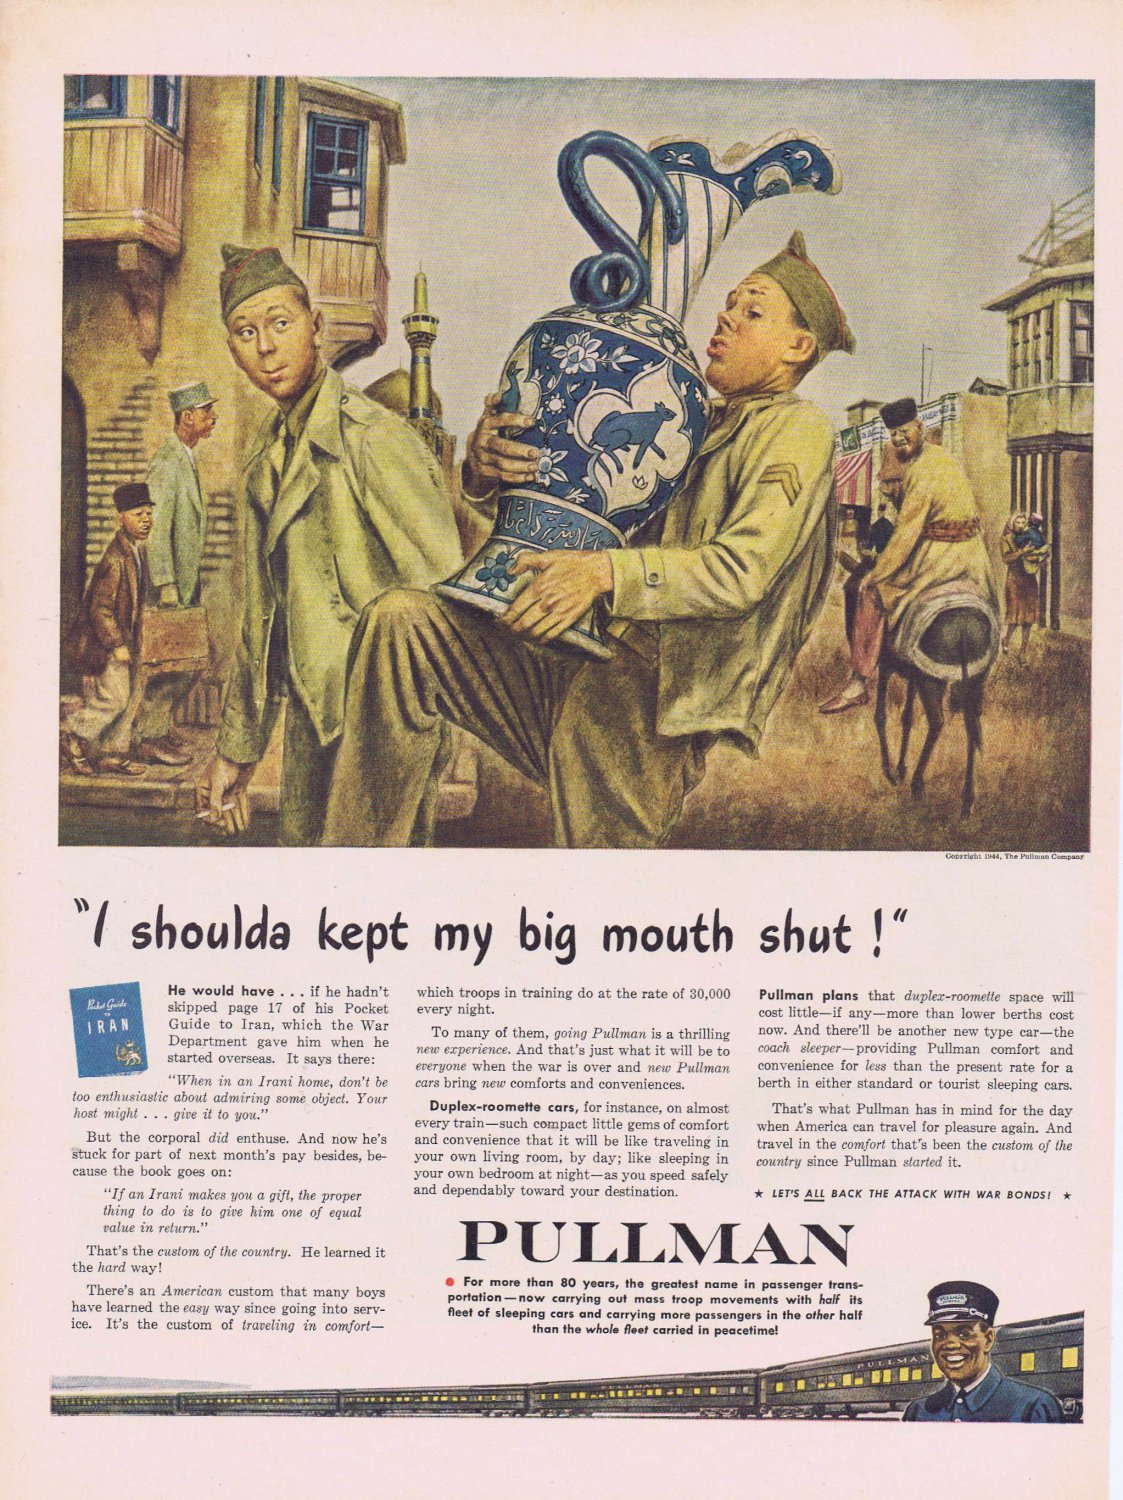 1944 Pullman Train WW2 Original Vintage Advertisement with Soldier and Gift from Iran